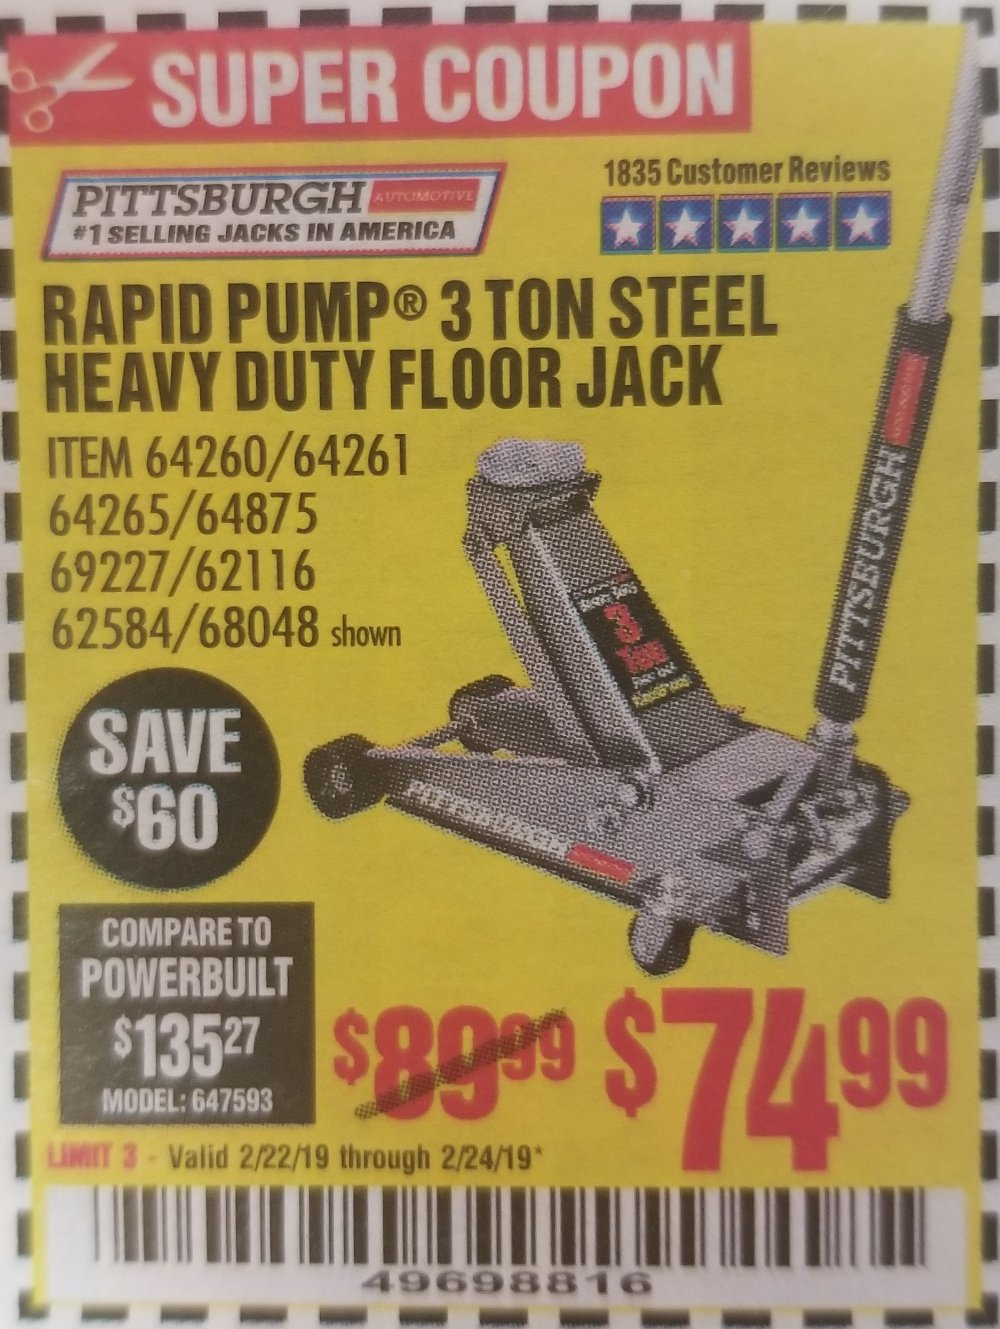 Harbor Freight Coupon, HF Coupons - Rapid Pump 3 Ton Heavy Duty Floor Jack